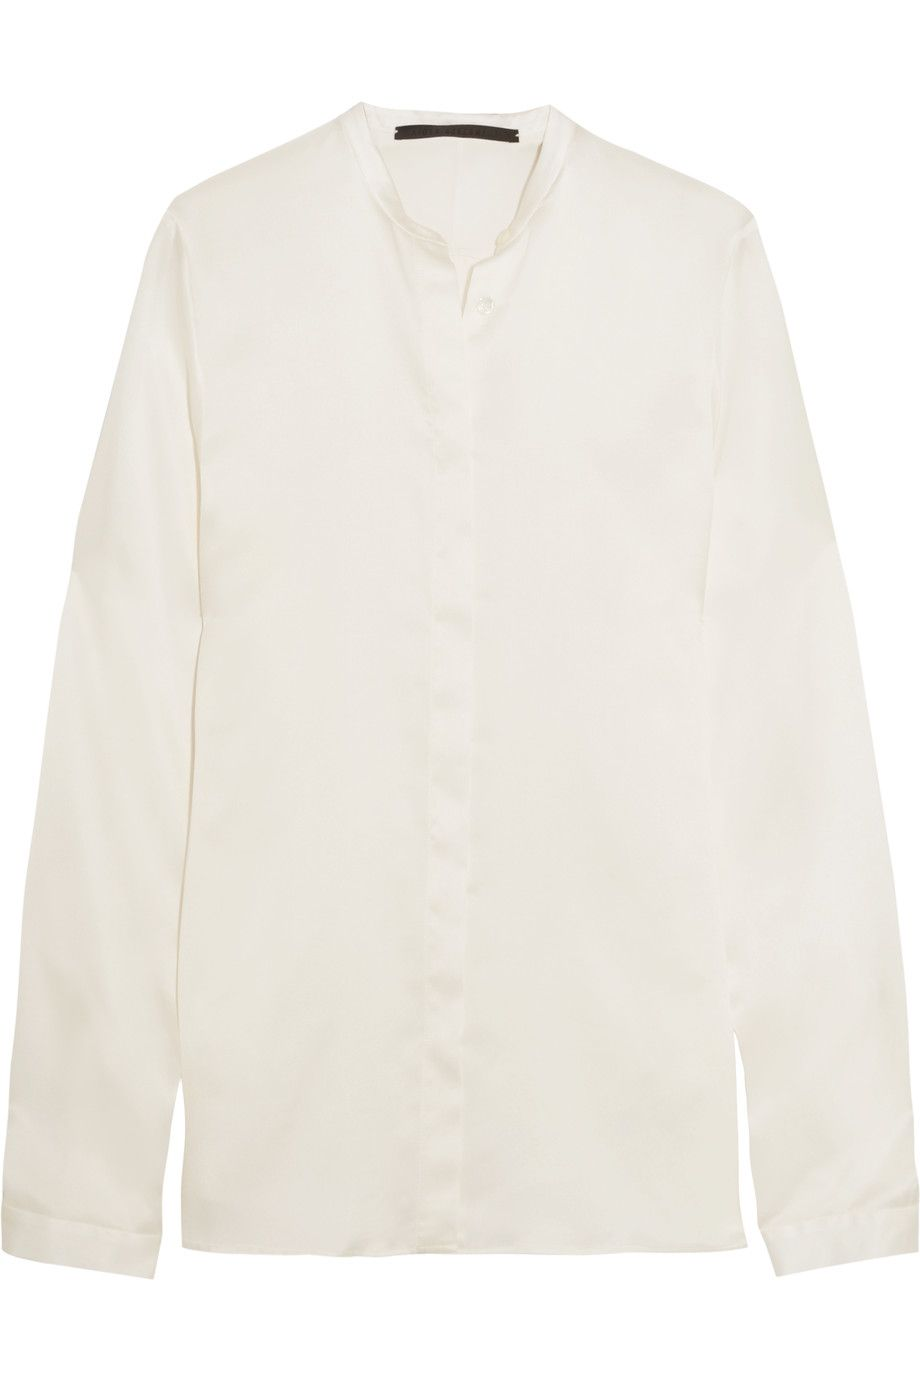 Haider Ackermann Woman Satin-trimmed Color-block Cotton Shirt Ivory Size 38 Haider Ackermann Inexpensive LzIswjhYse